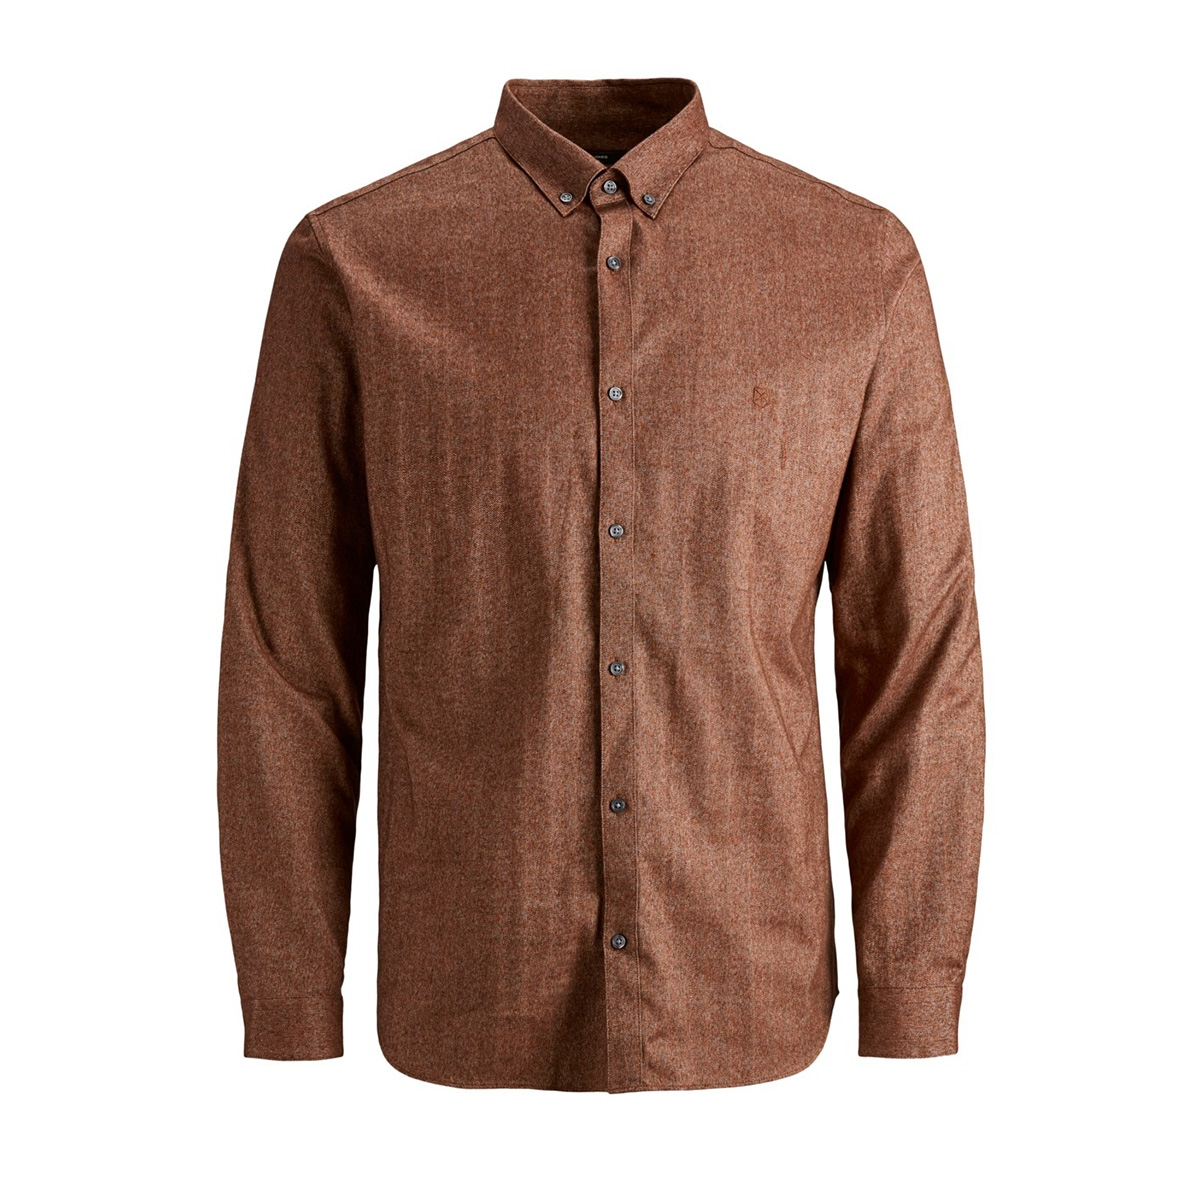 jprlogo twist shirt l/s sts 12158301 jack & jones overhemd umber/slim fit